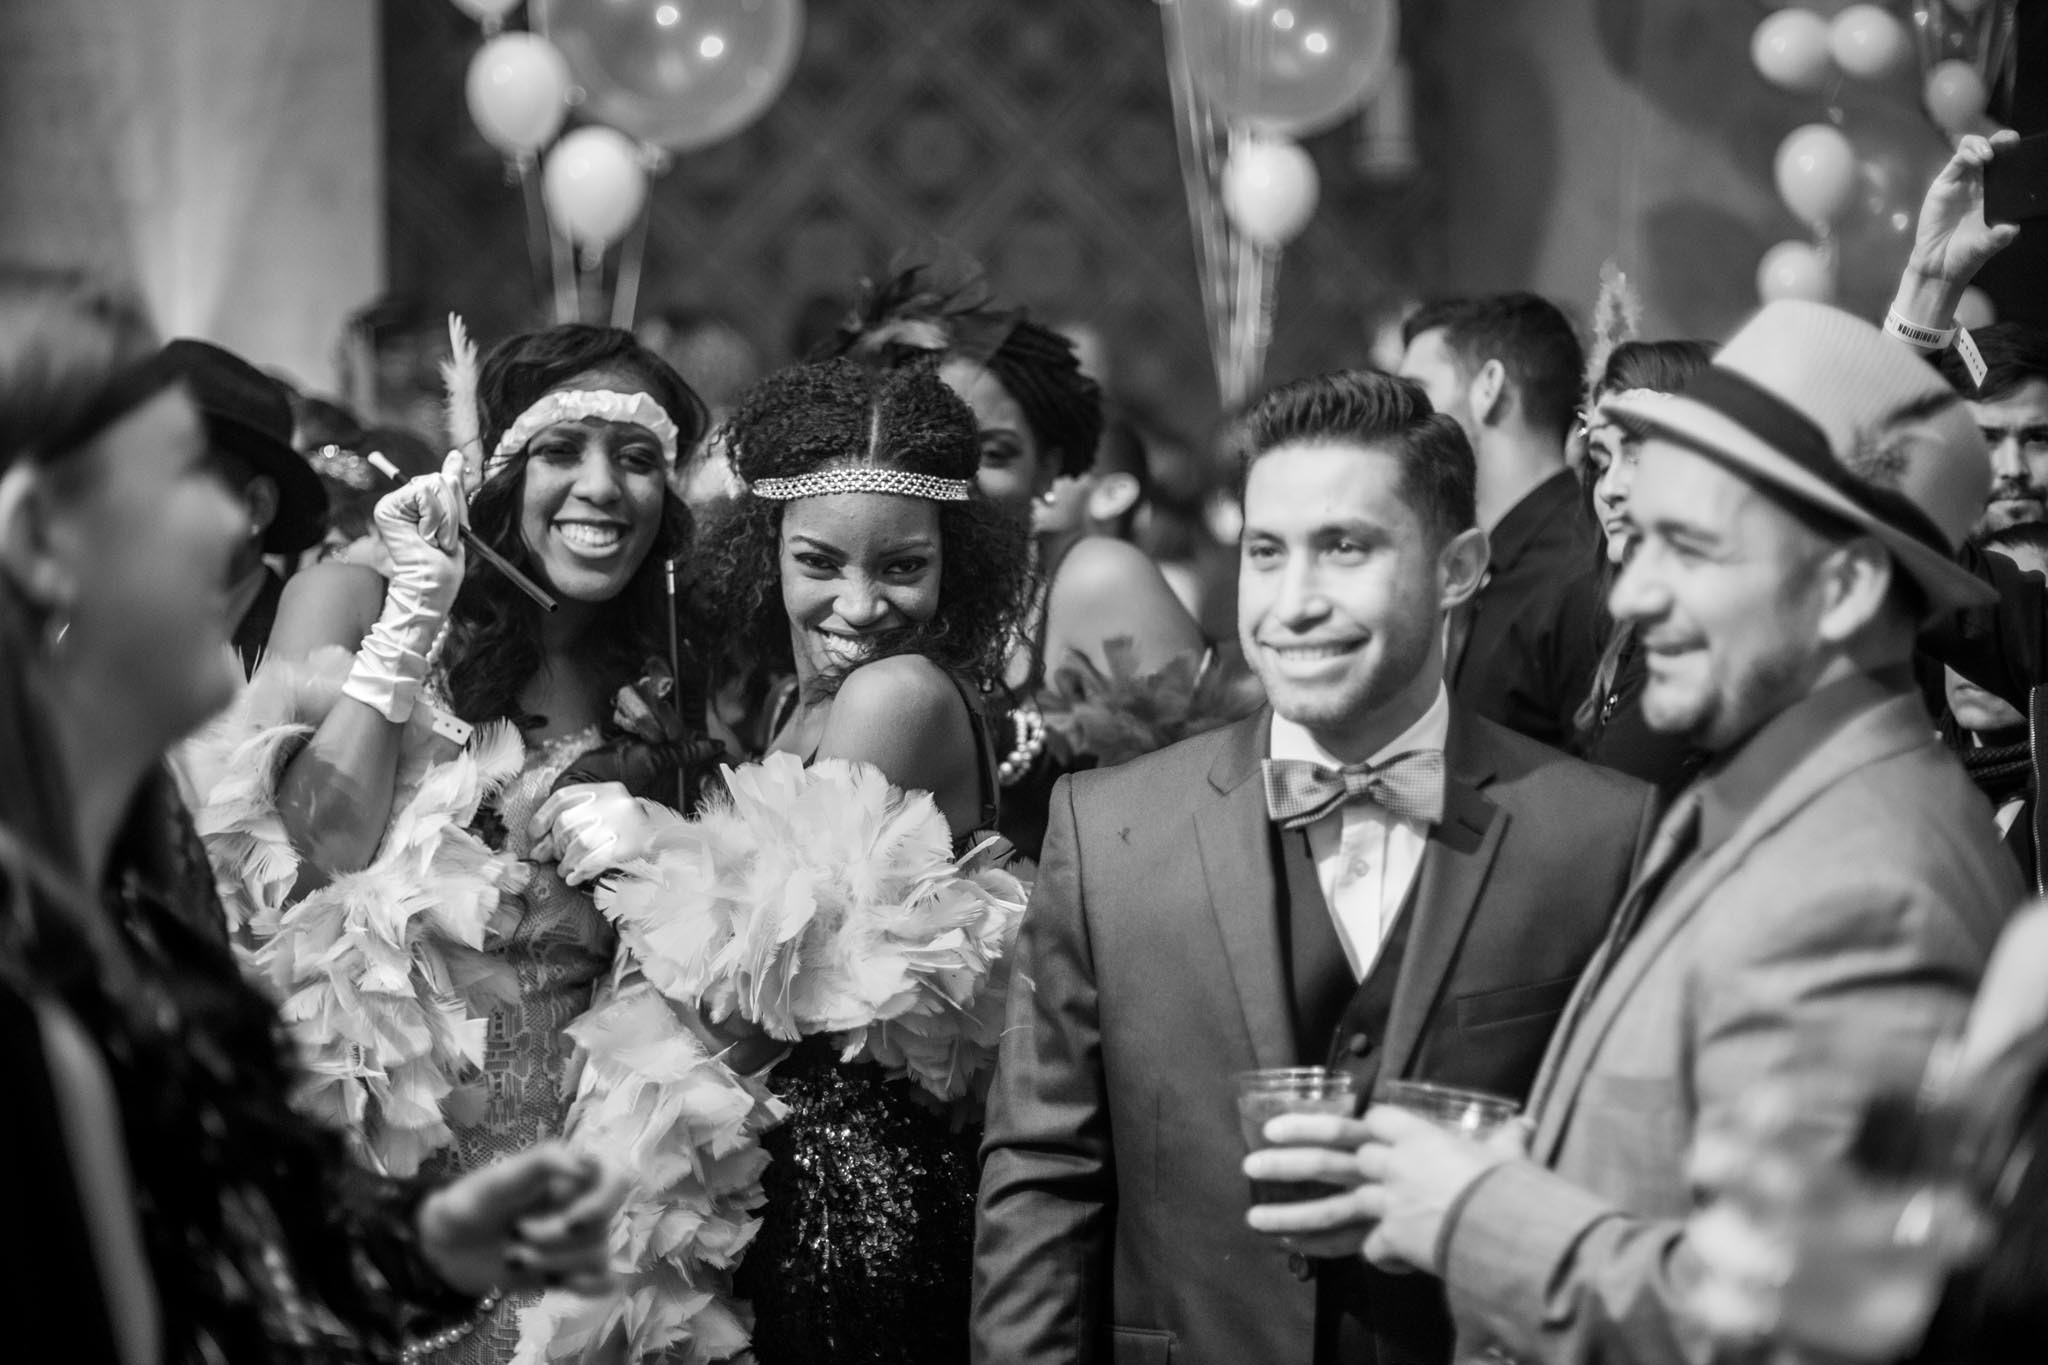 prohibition nye at union station